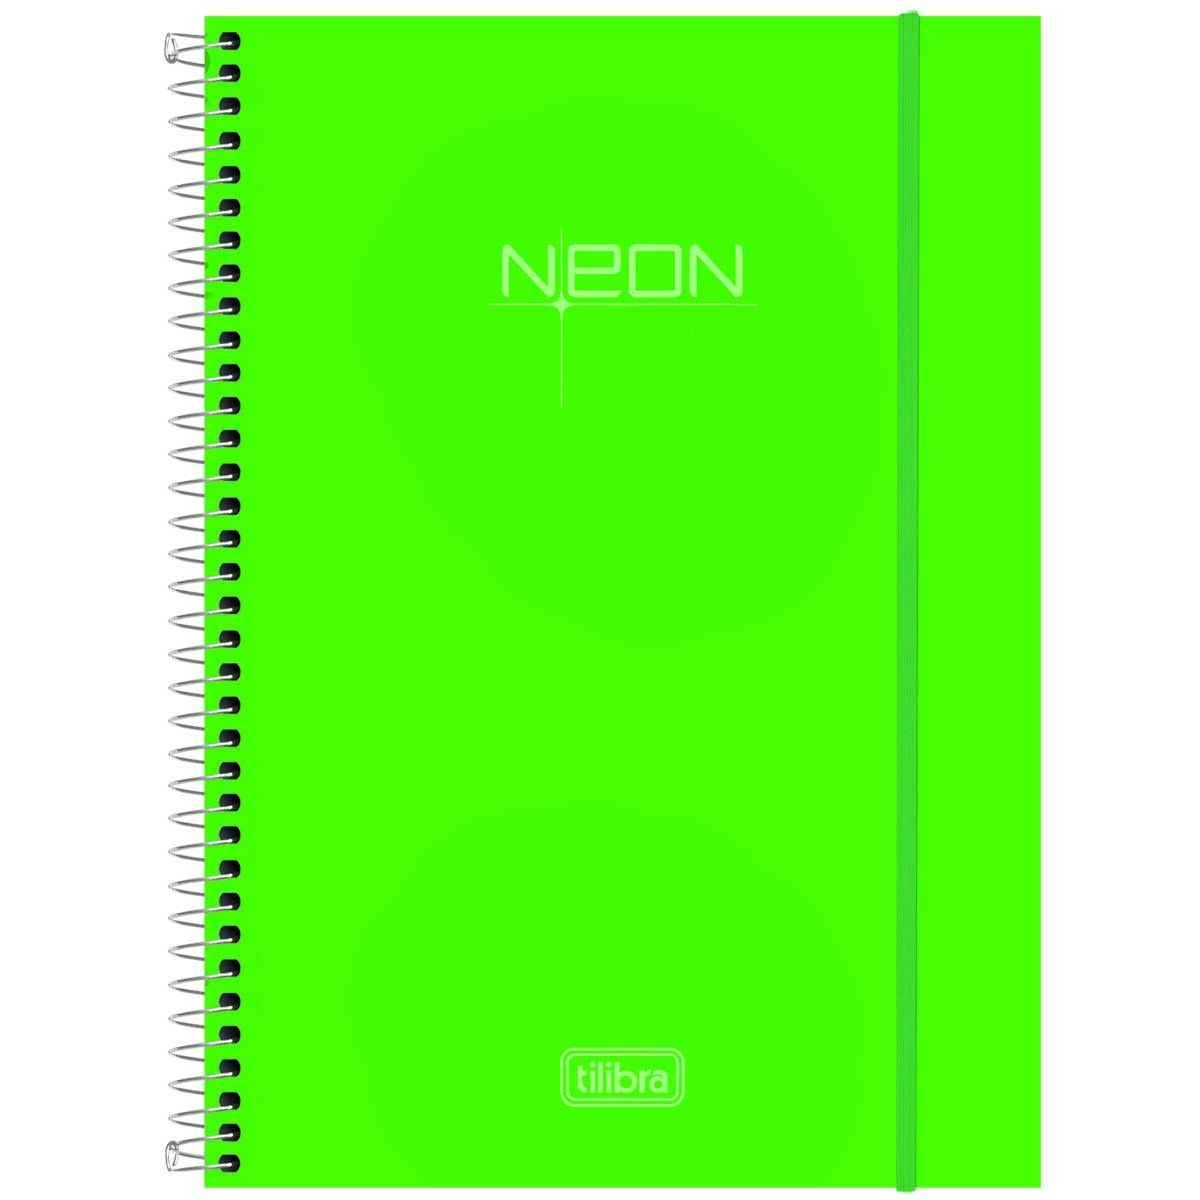 Best 25 caderno neon ideas on pinterest fundos de n on for Palavras com h interno